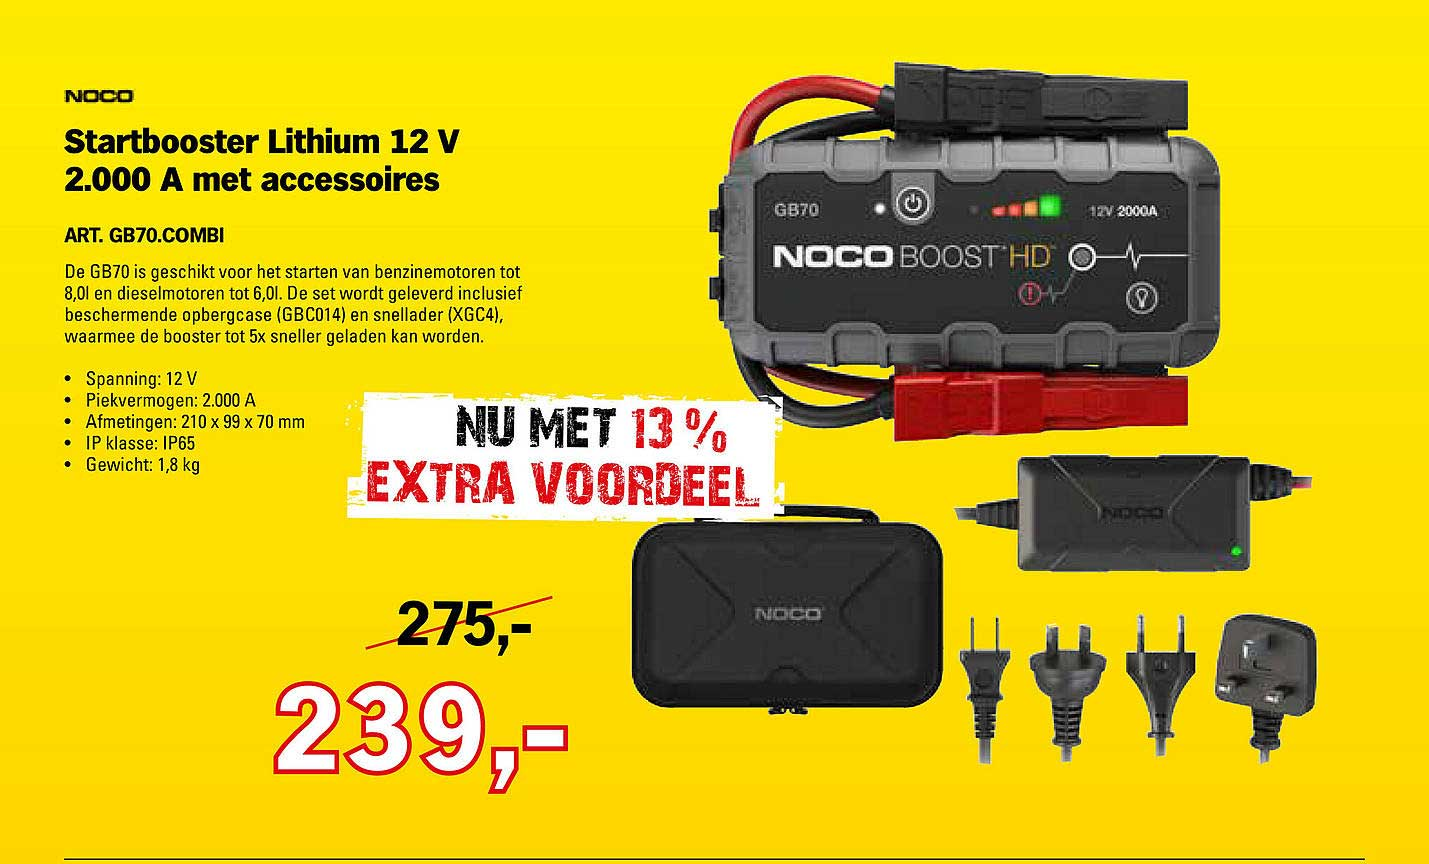 Toolspecial Noco Startbooster Lithium 12 V 2.000 A Met Accessoires